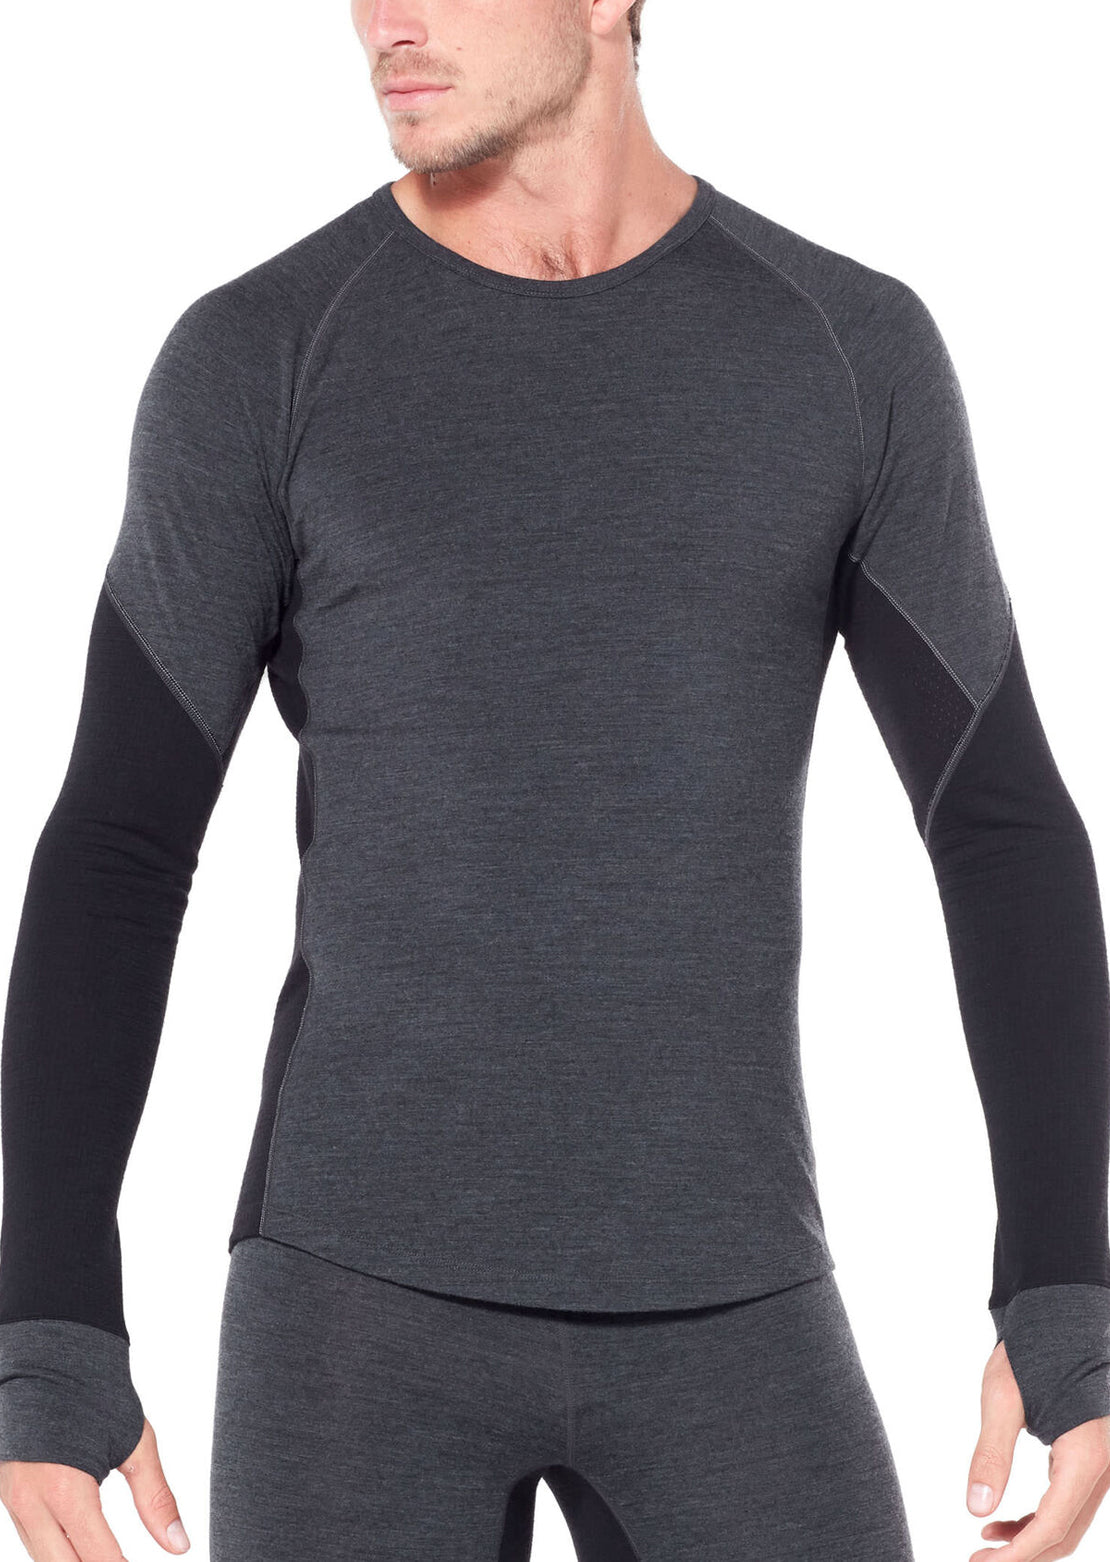 Icebreaker Men's Bodyfitzone Merino 260 Zone Longsleeve Thermal Jet Heather/Black